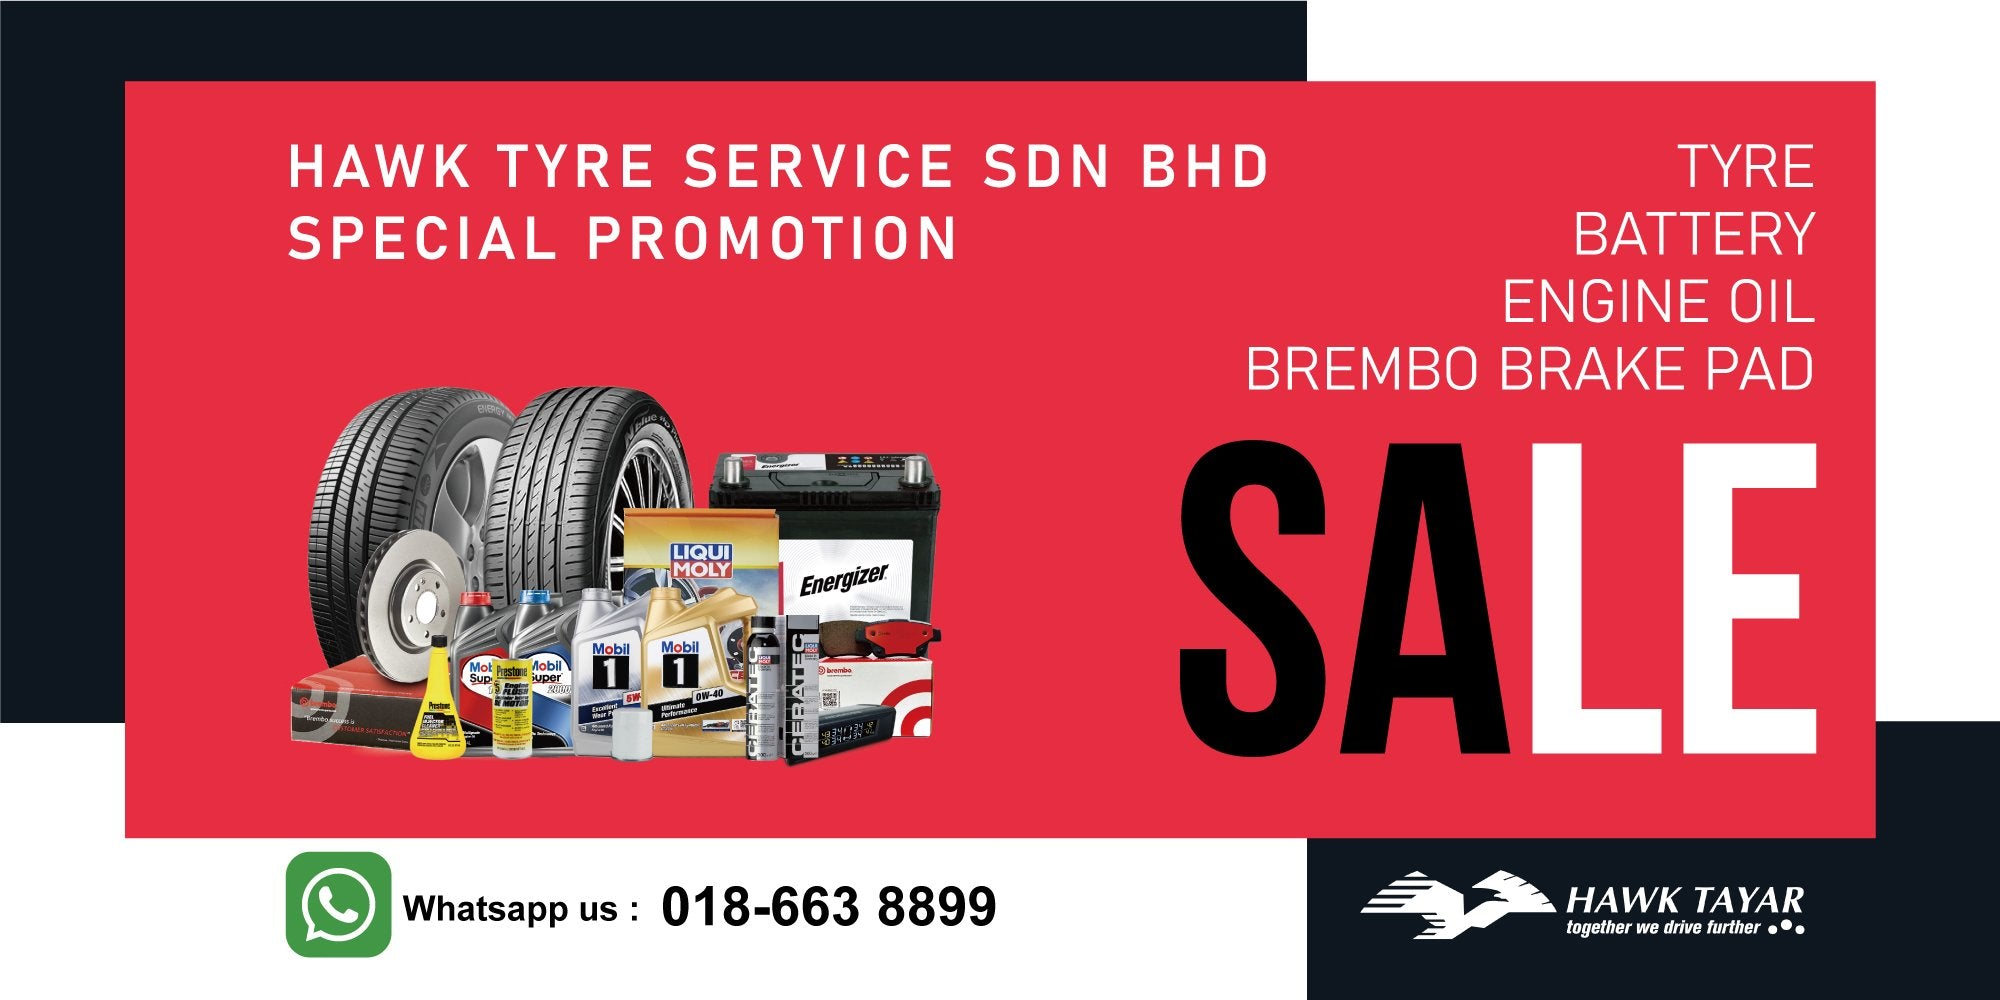 Hawk Tyre CNY 2020 Promotion extended until 30 september 2019